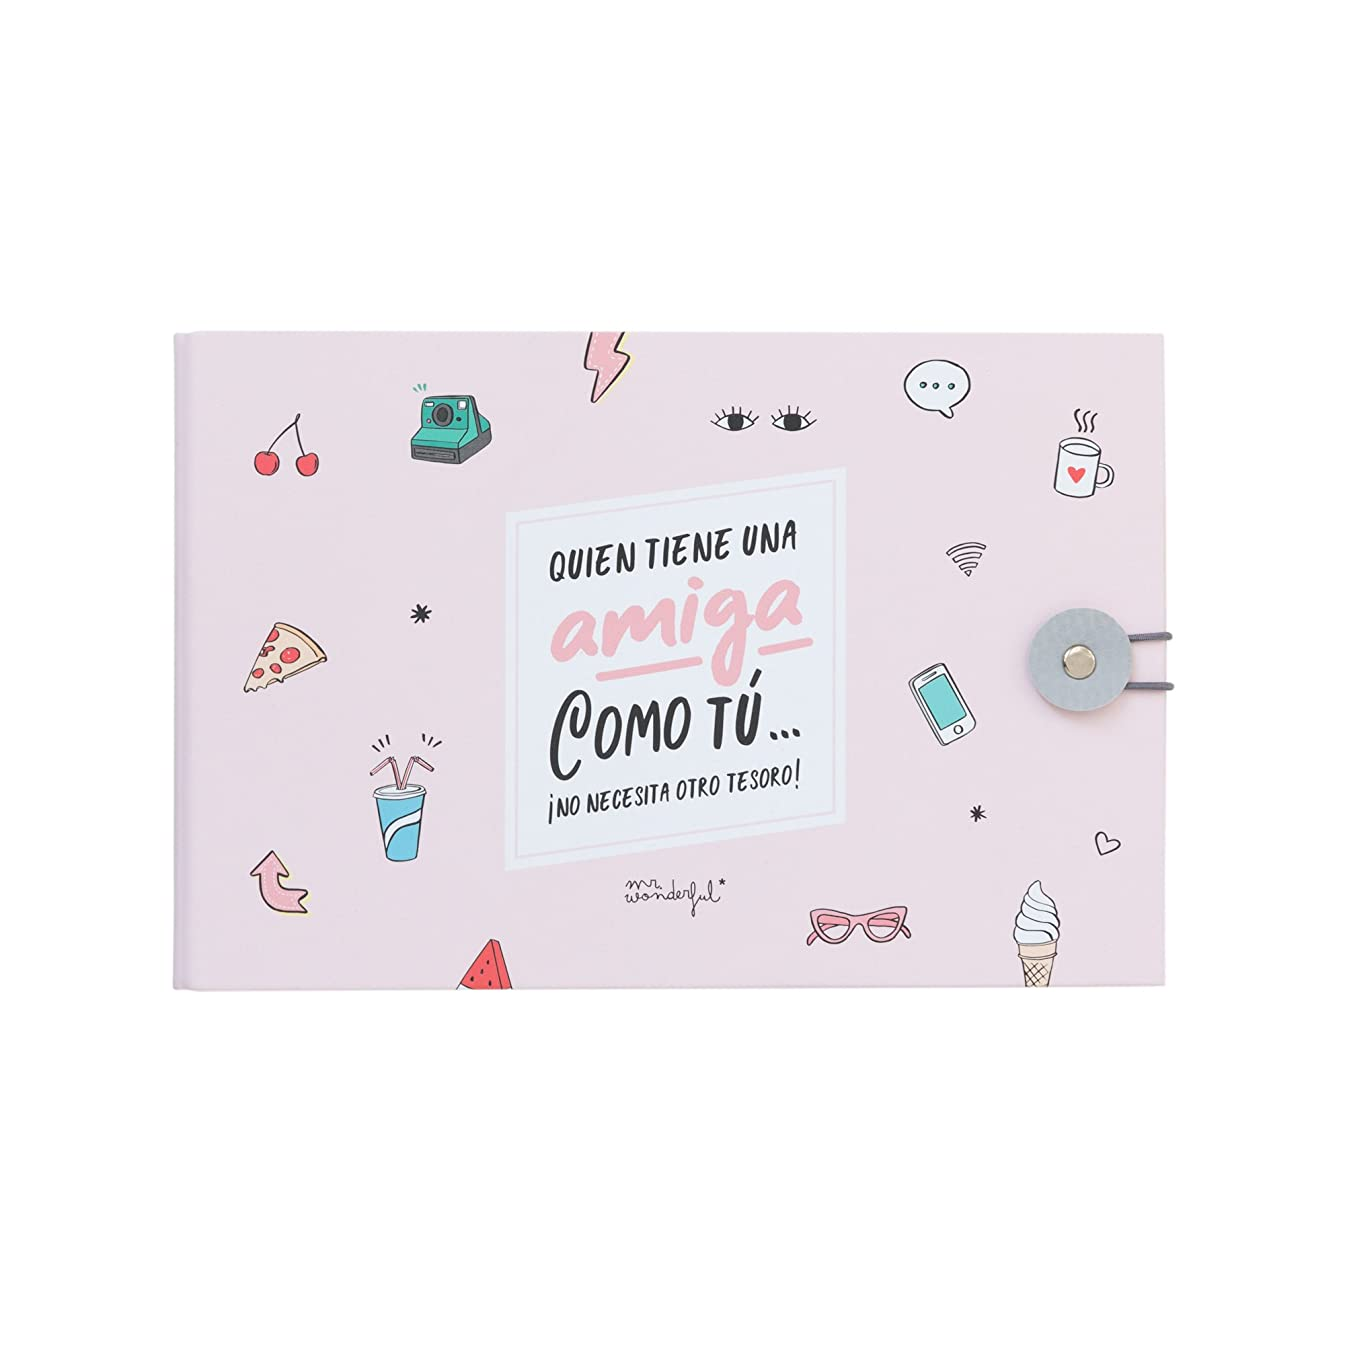 Mr. Wonderful Friend Like You. You Do Not Need Another Treasure Photo Album, Paper, Multicolor, 23?x 15?x 3.5?cm